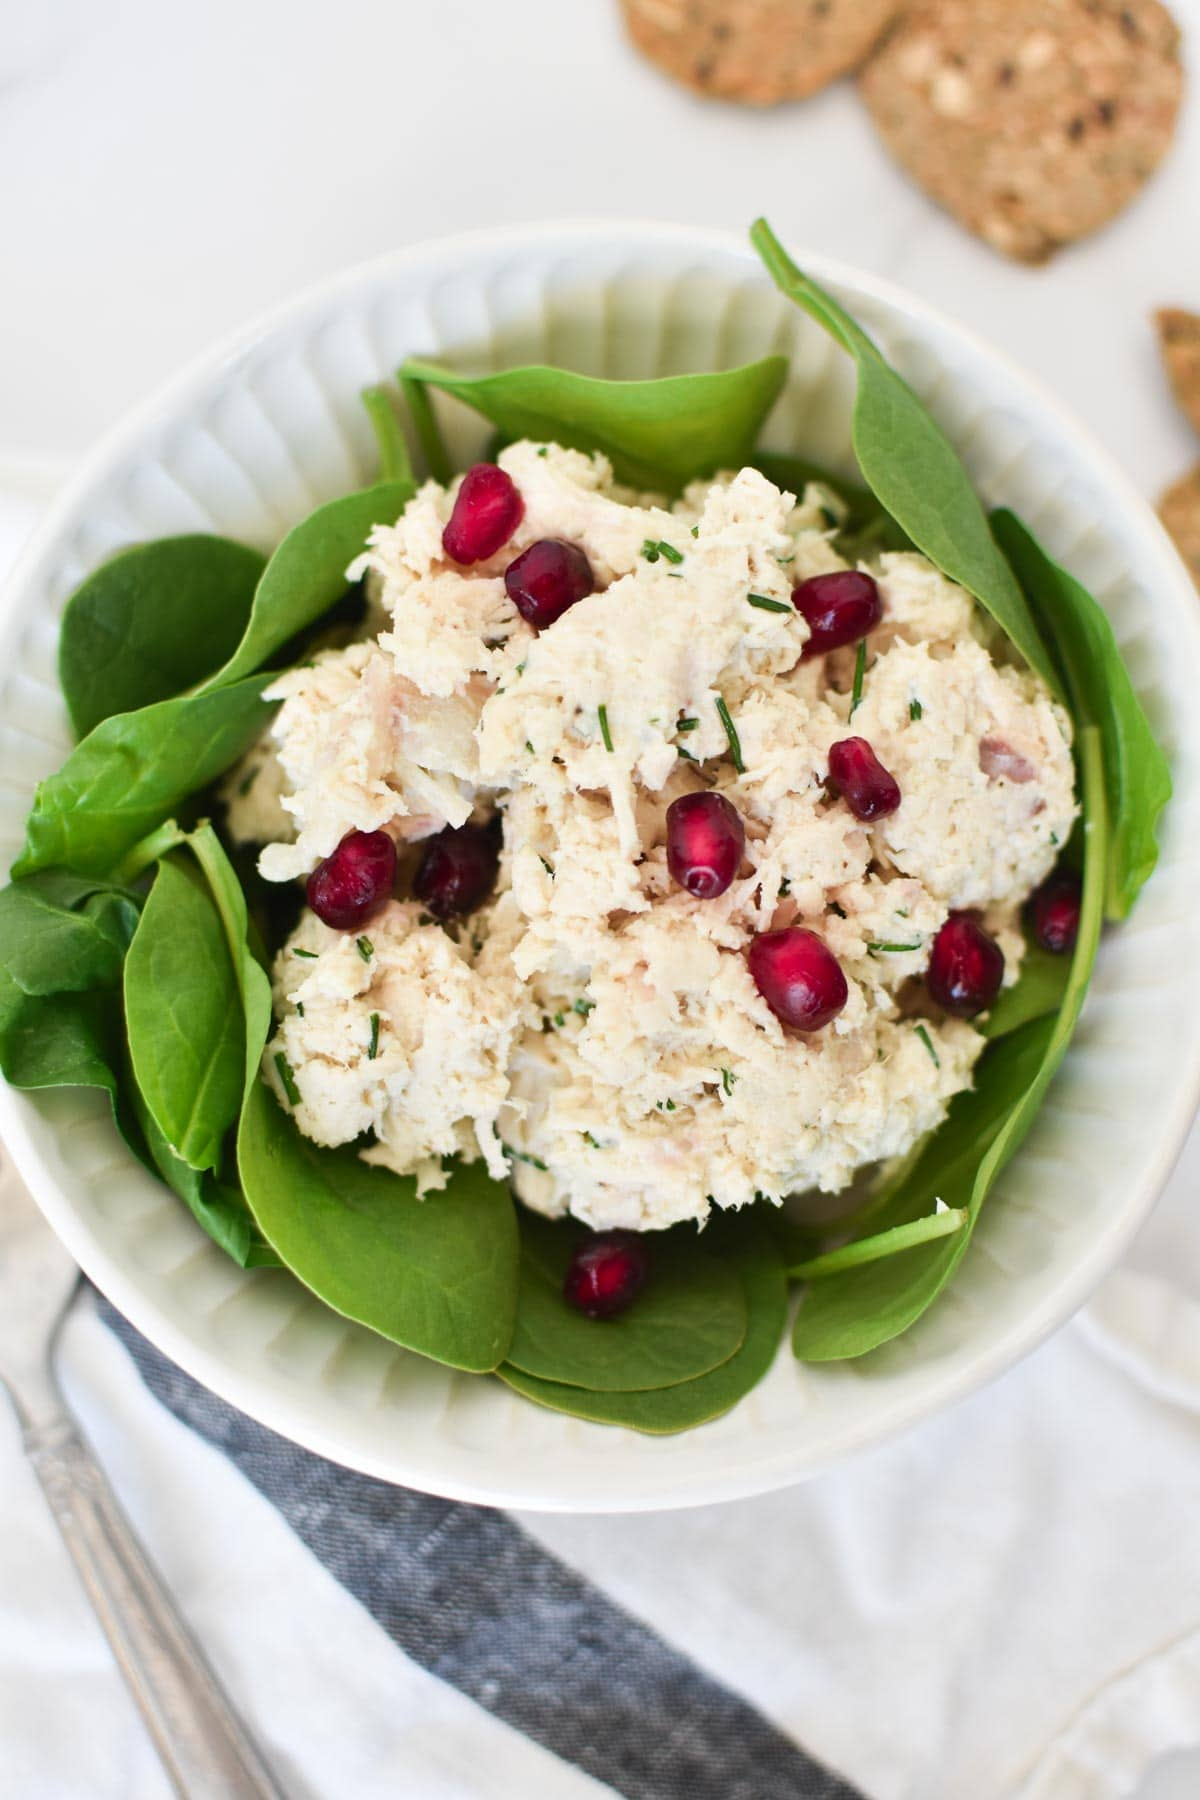 A pomegranate chicken salad in a white bowl next to a fork and crackers